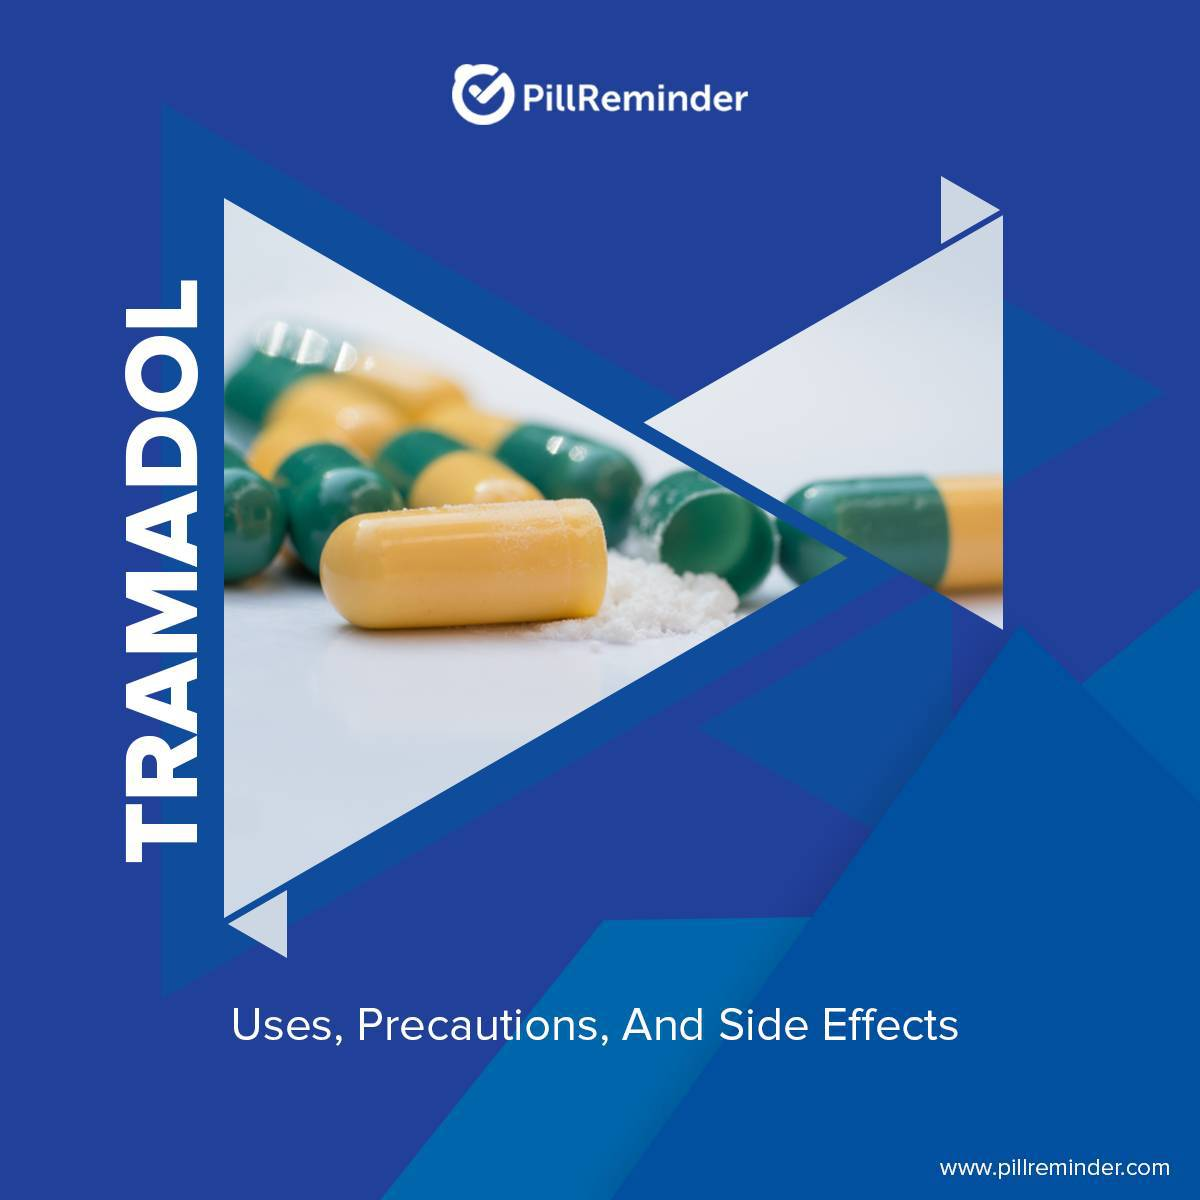 Tramadol Uses, Precautions, And Side Effects